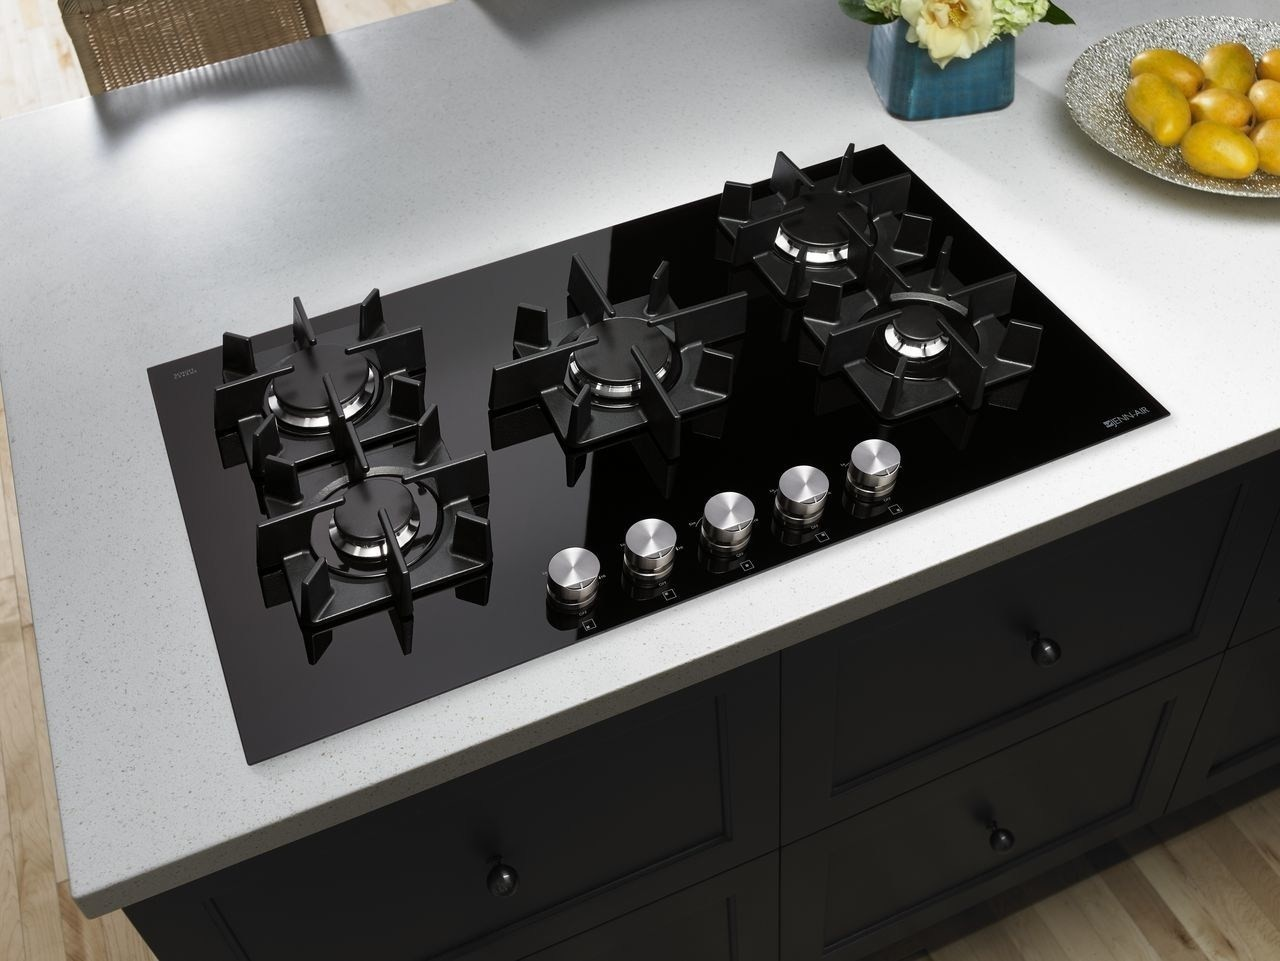 s kitchen thor ebay gas cooktop stove countertop p burners